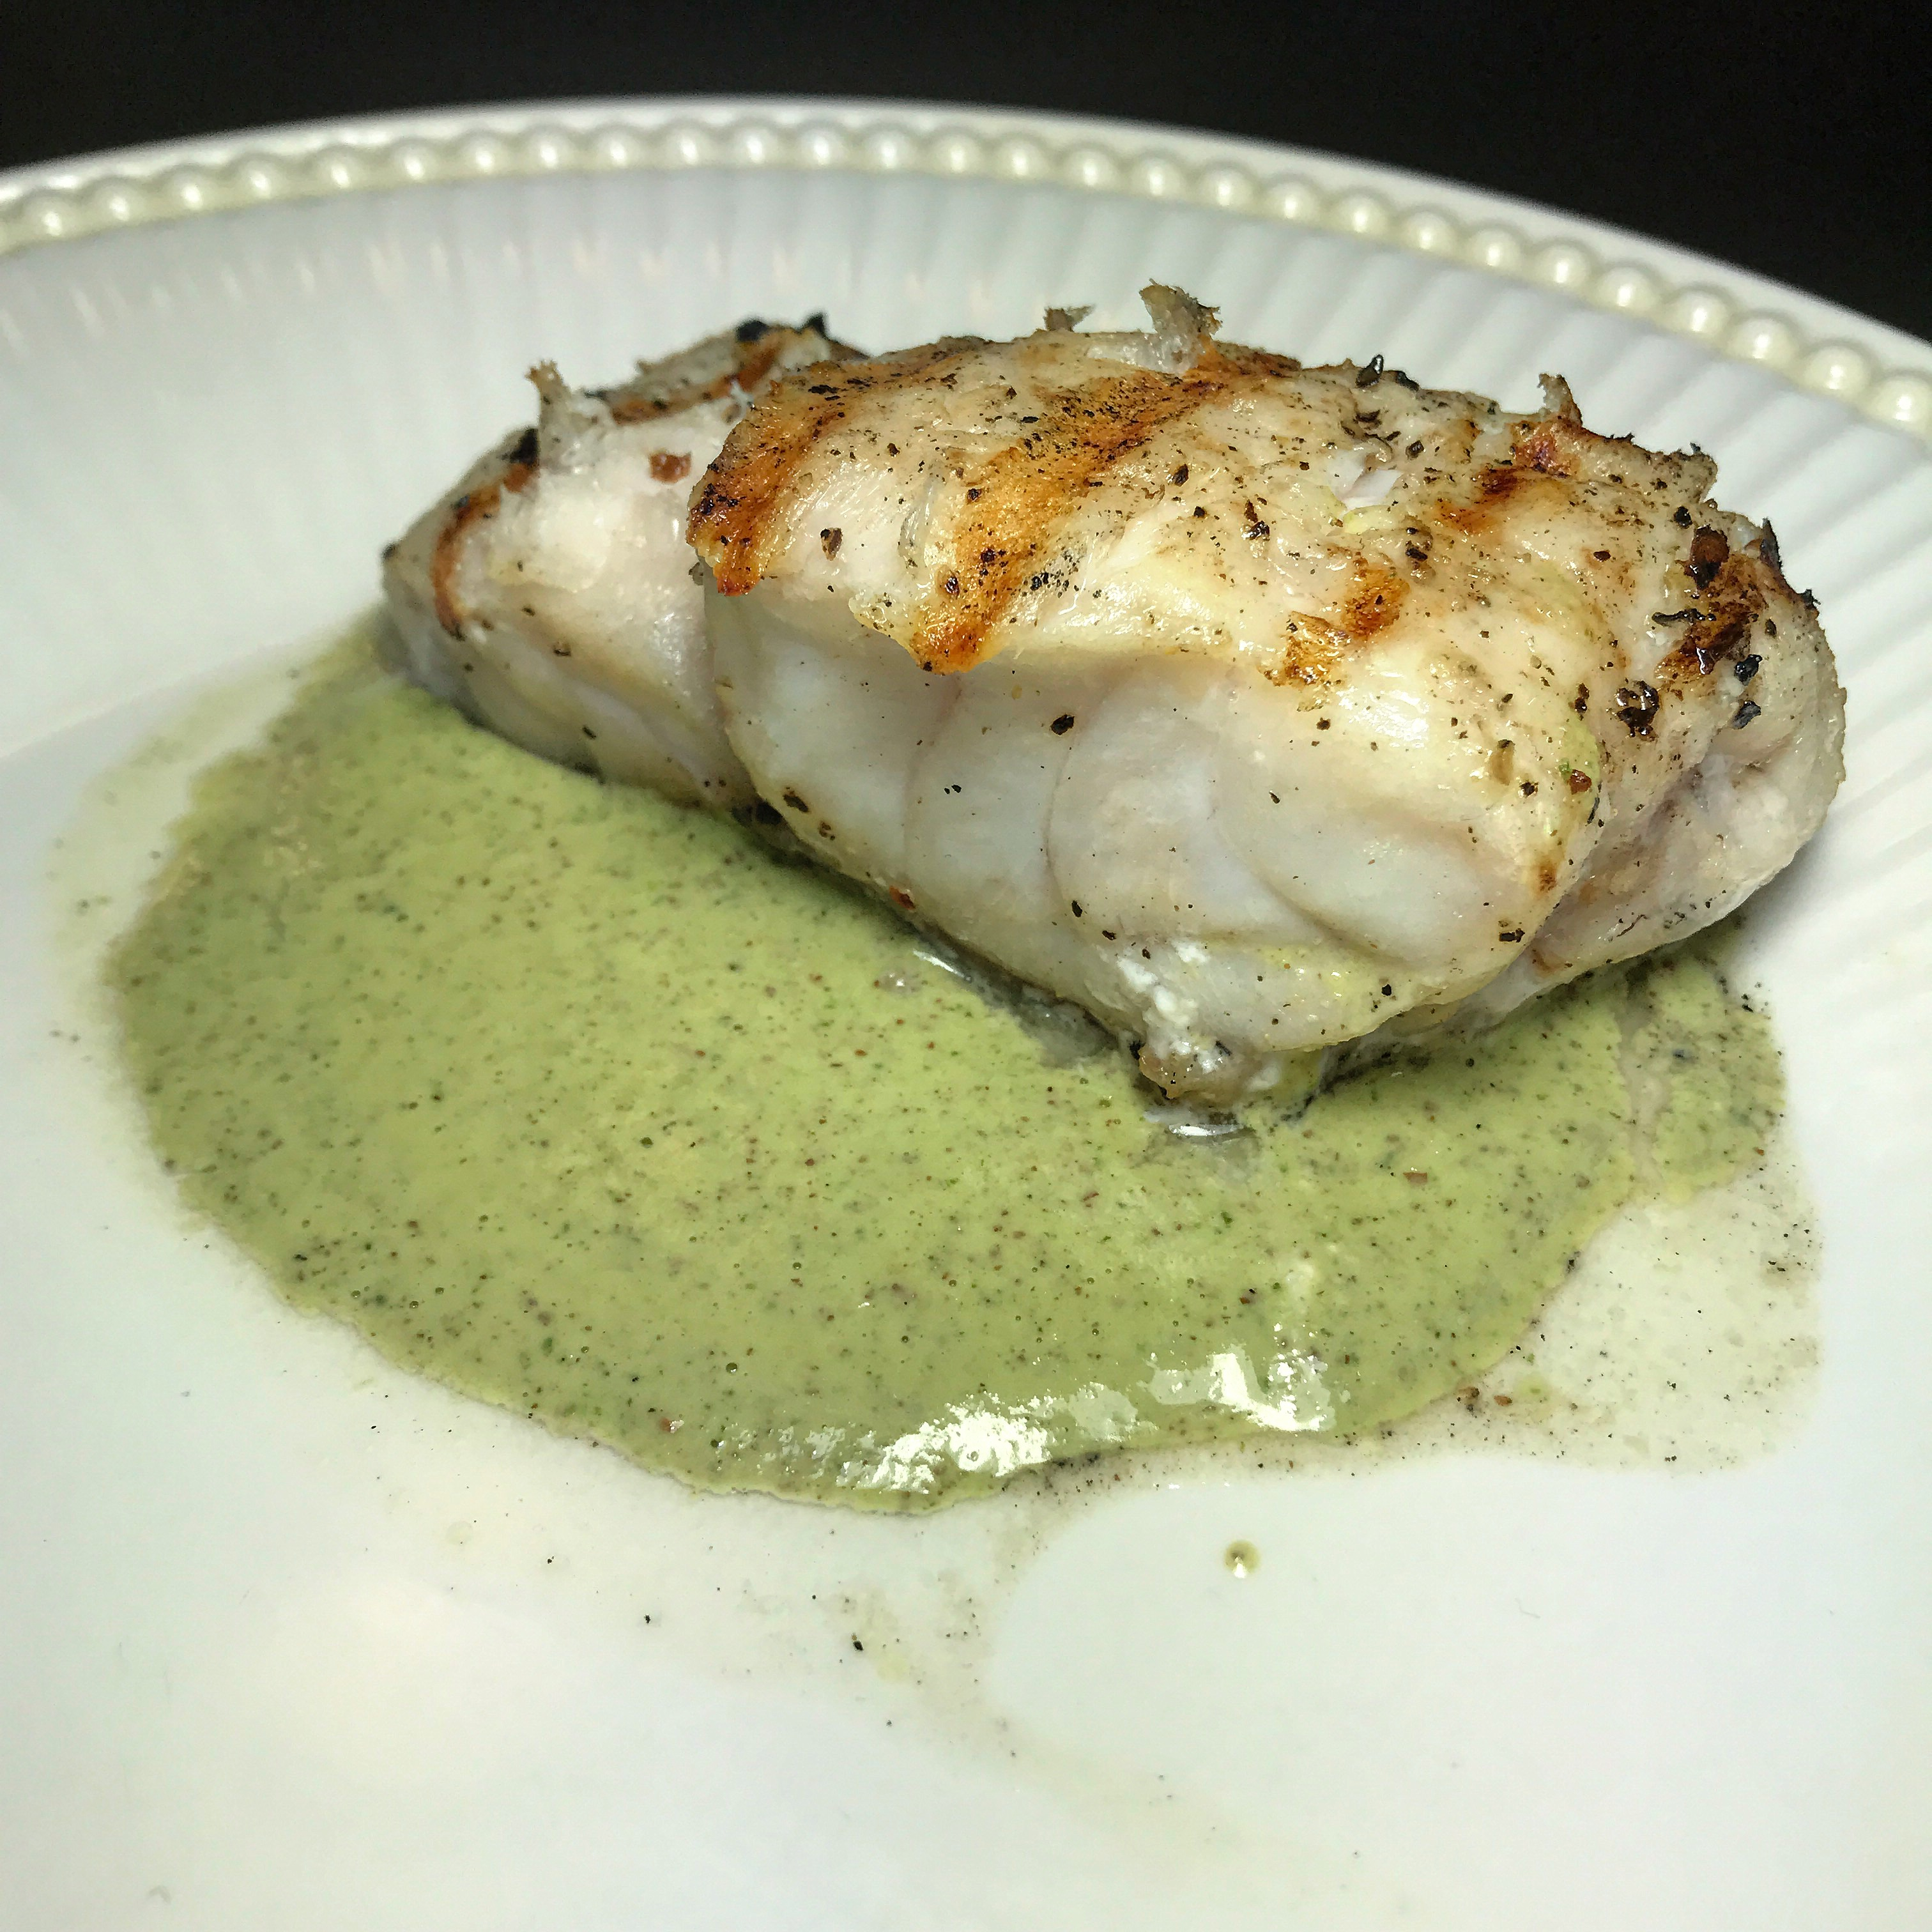 Grilled grouper with lemon parsley sauce